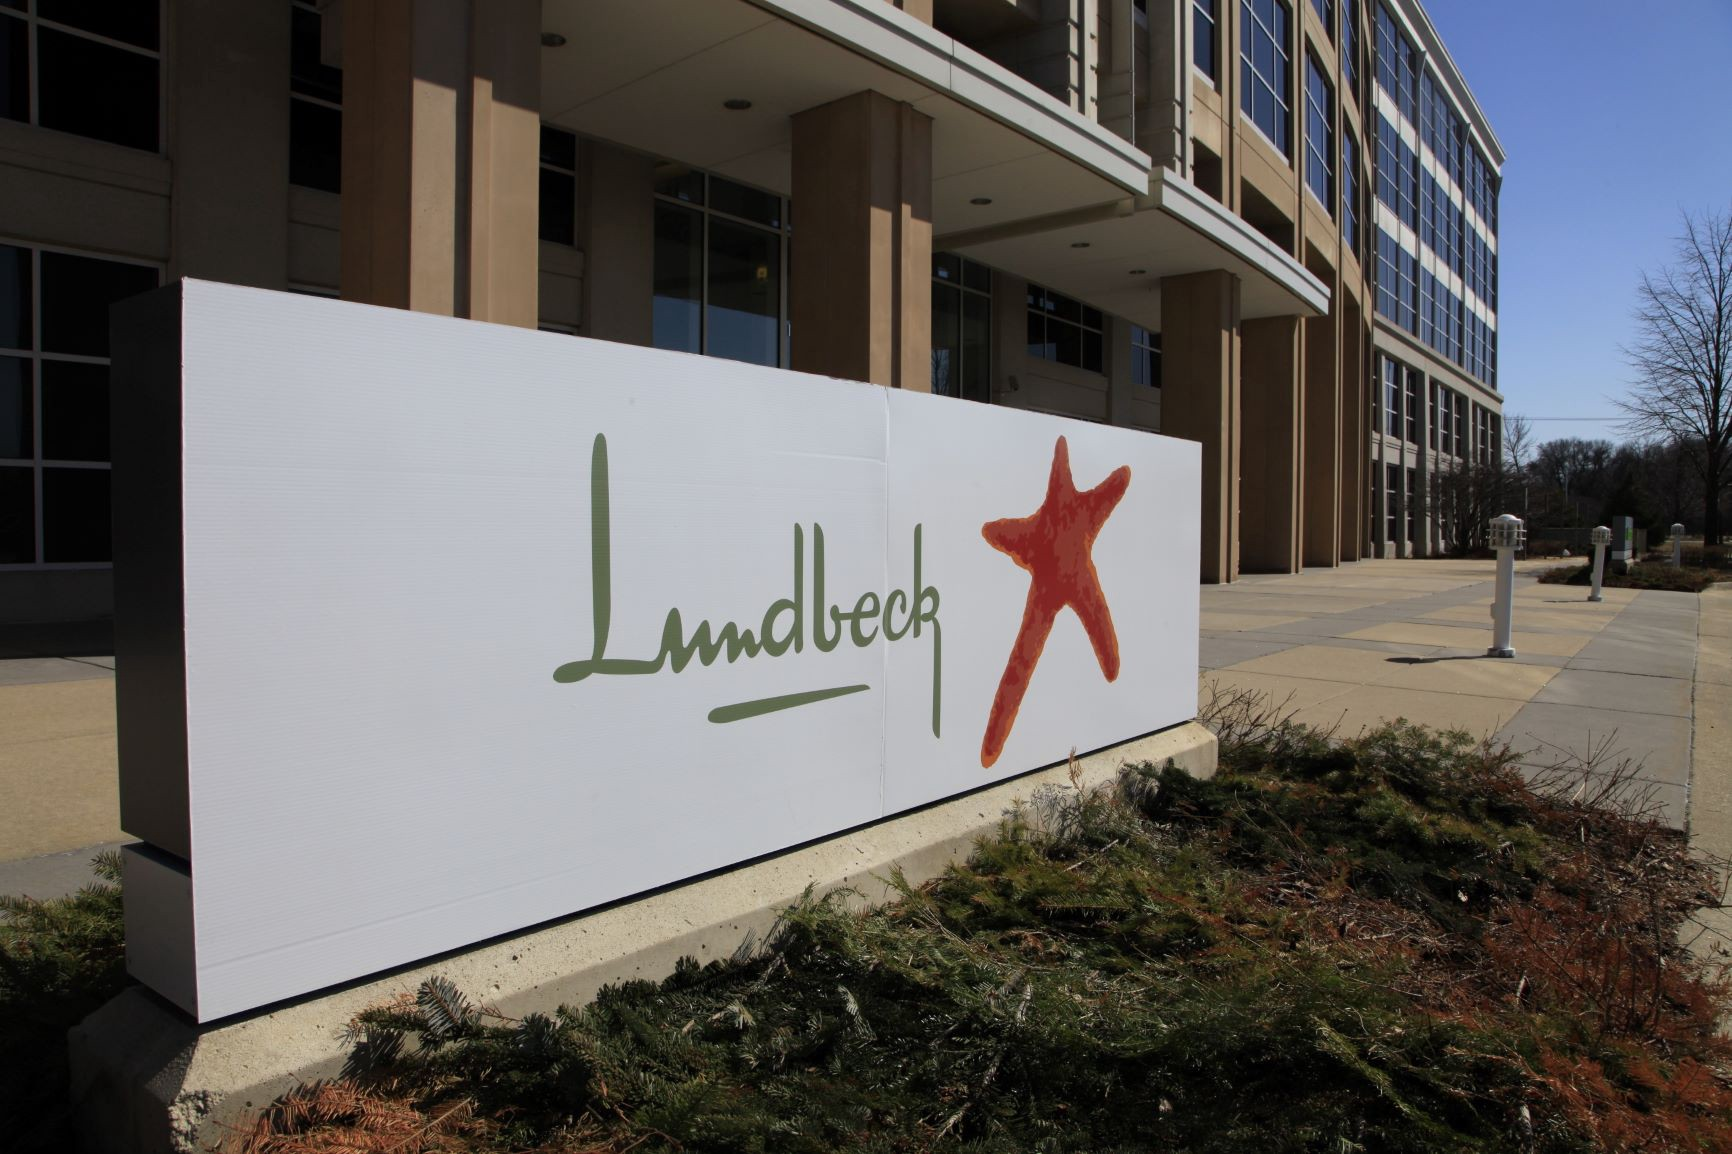 Lundbeck's new migraine drug, Vyepti, is FDA approved